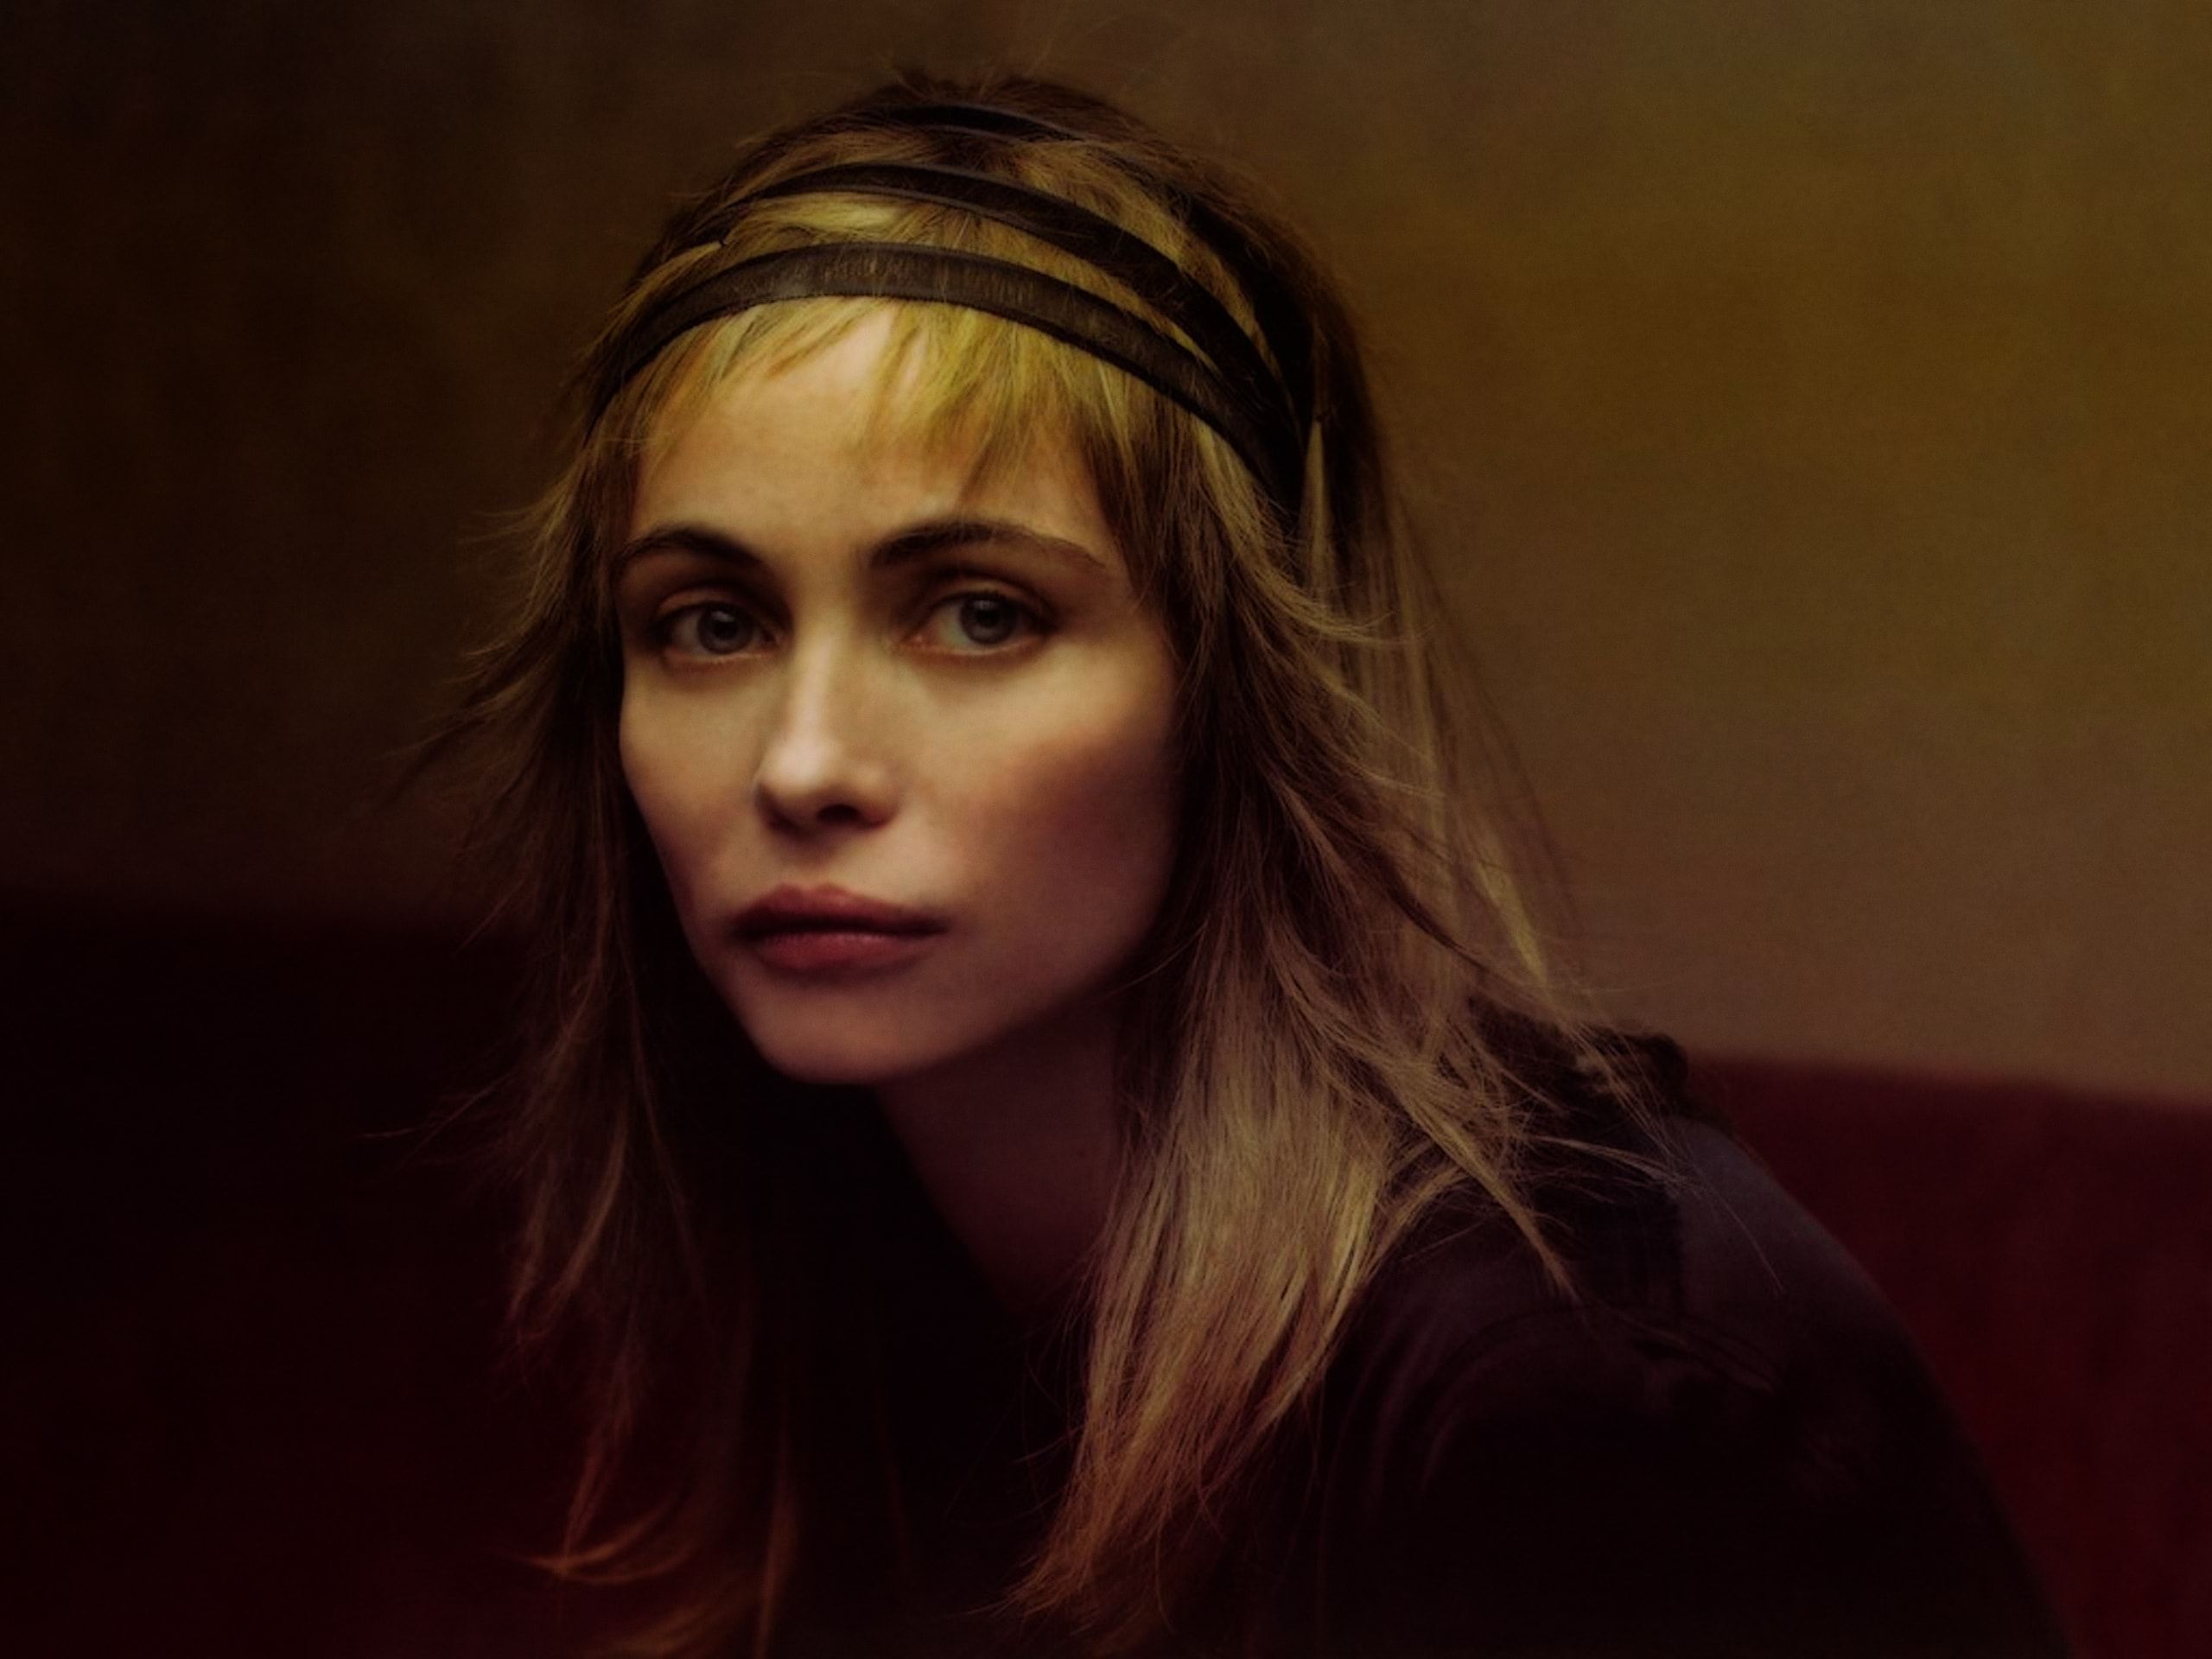 Emmanuelle Beart Background